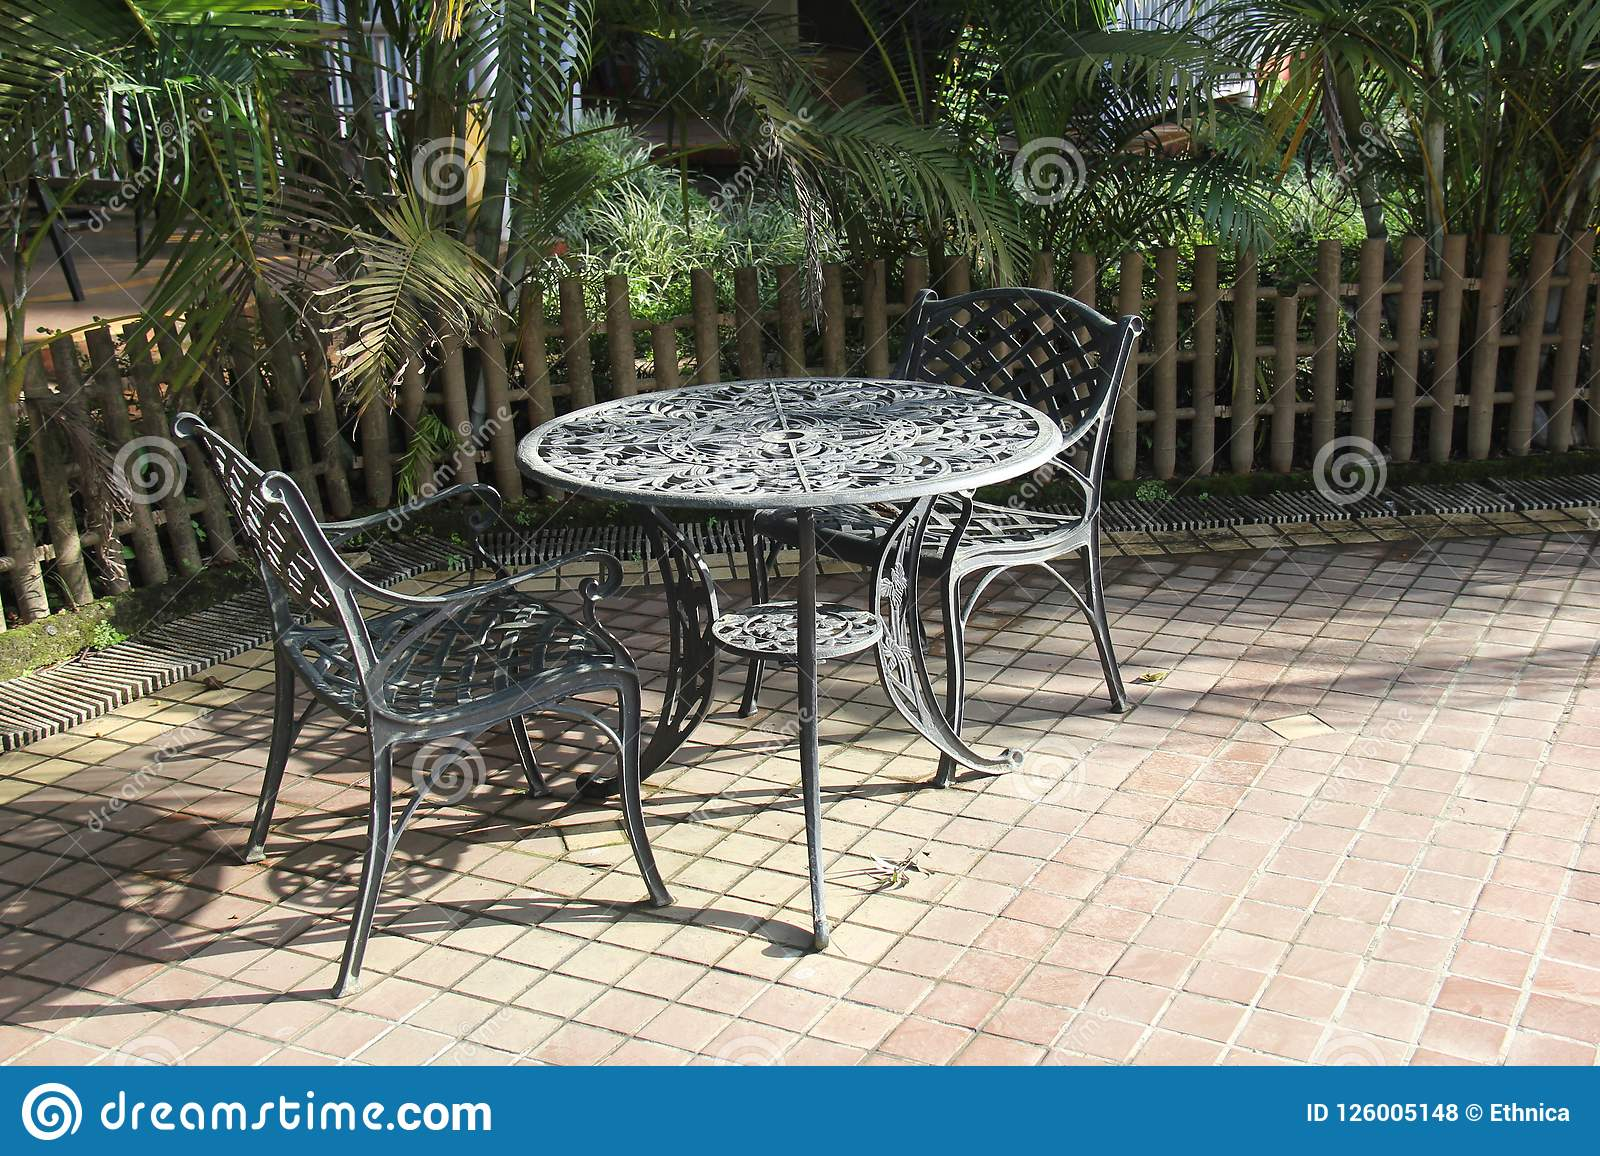 Picture of: Two Iron Chairs With Round Table In The Garden Stock Photo Image Of Leaf Meeting 126005148